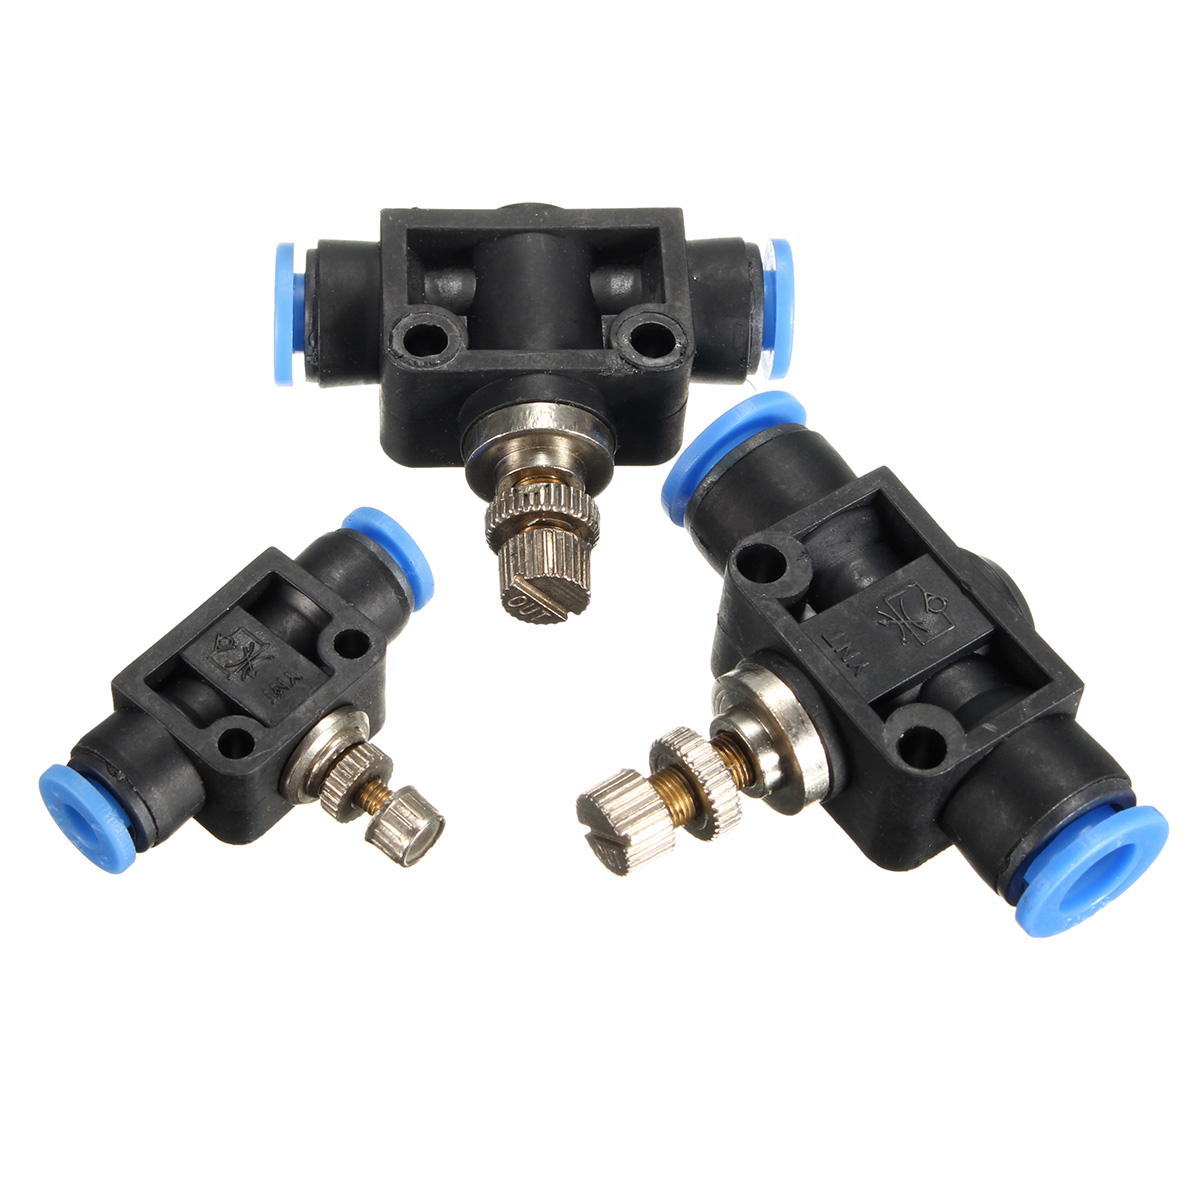 4mm 6mm 8mm OD Airflow Speed Control Valve Tube Hose Water Pneumatic Push In Fitting